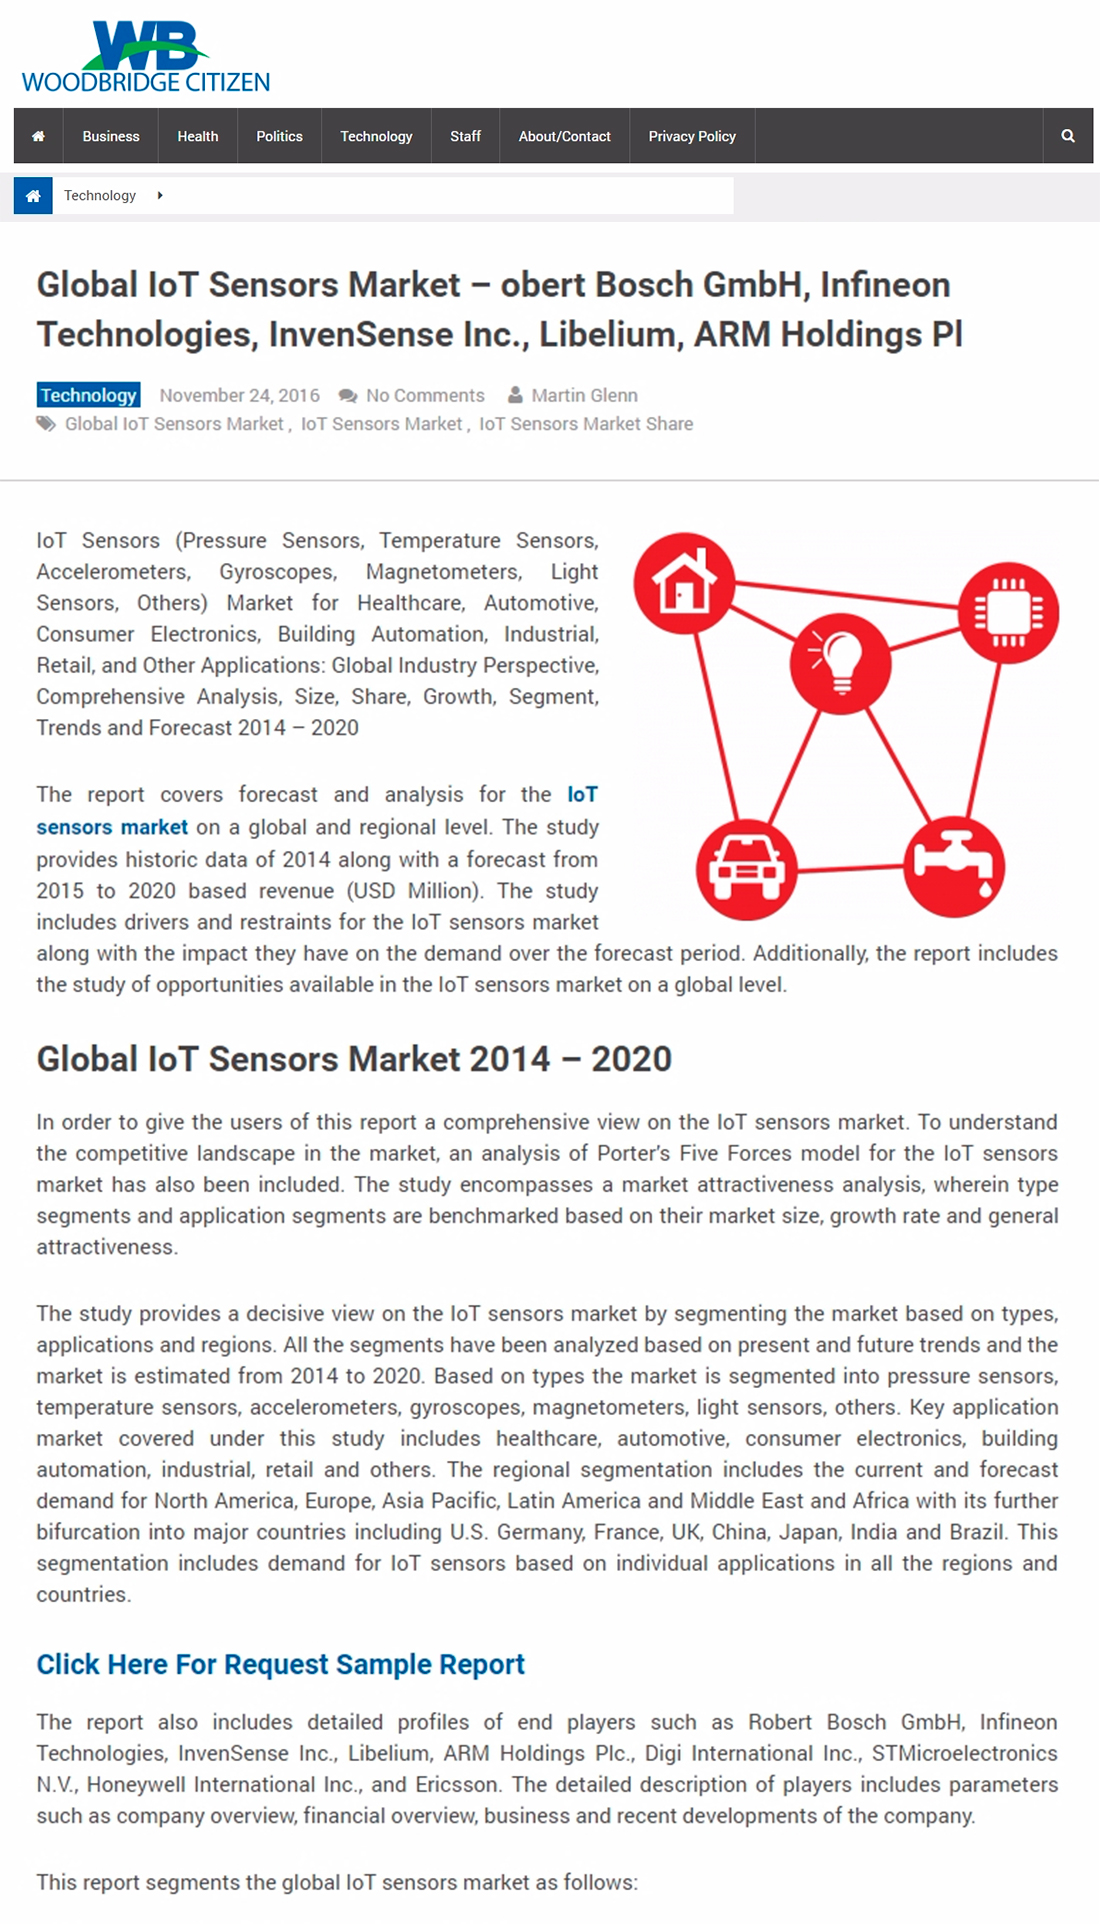 Woodbridge Citizen – Global IoT Sensors Market